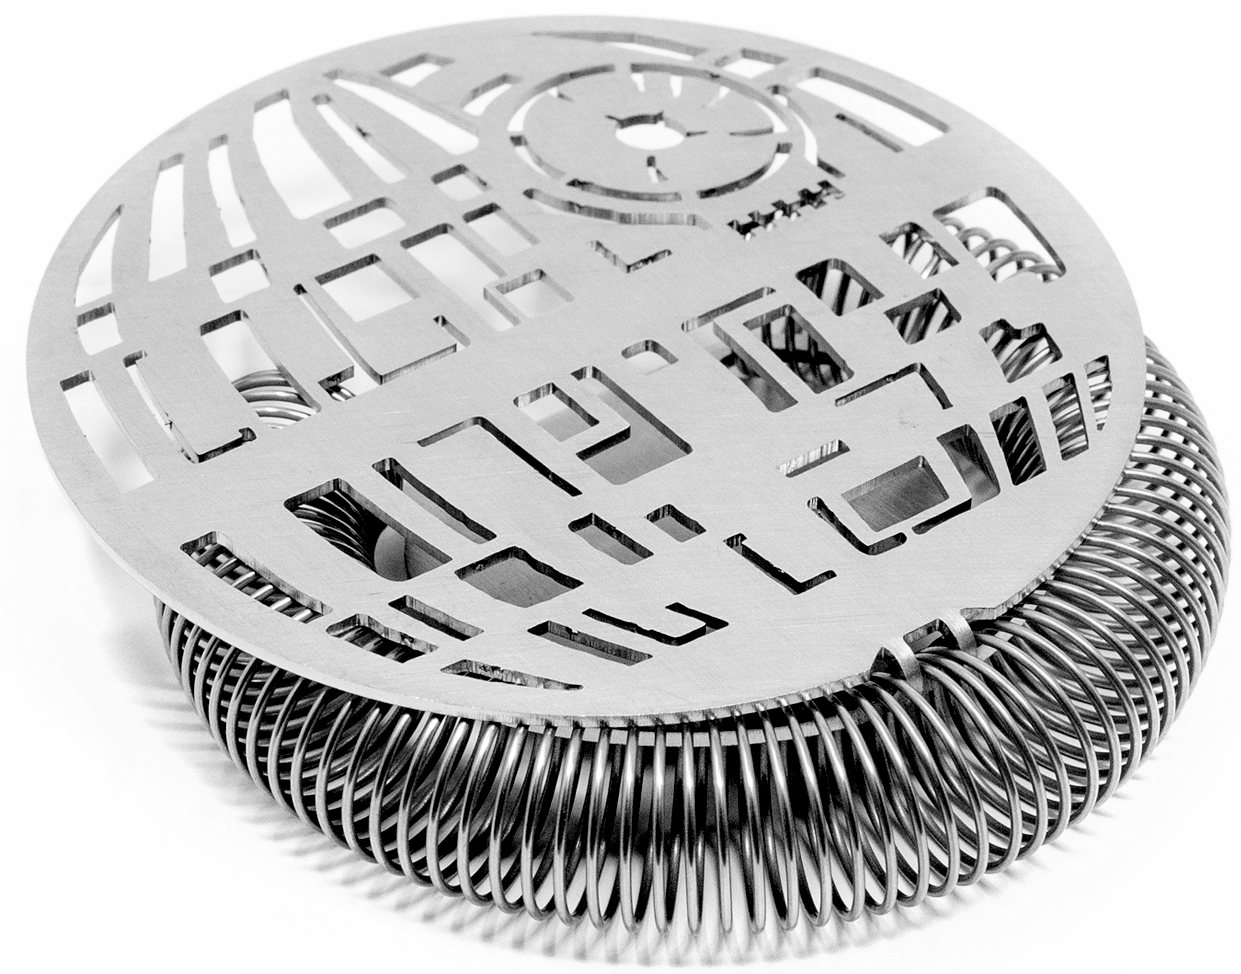 Thats No Moon strainer